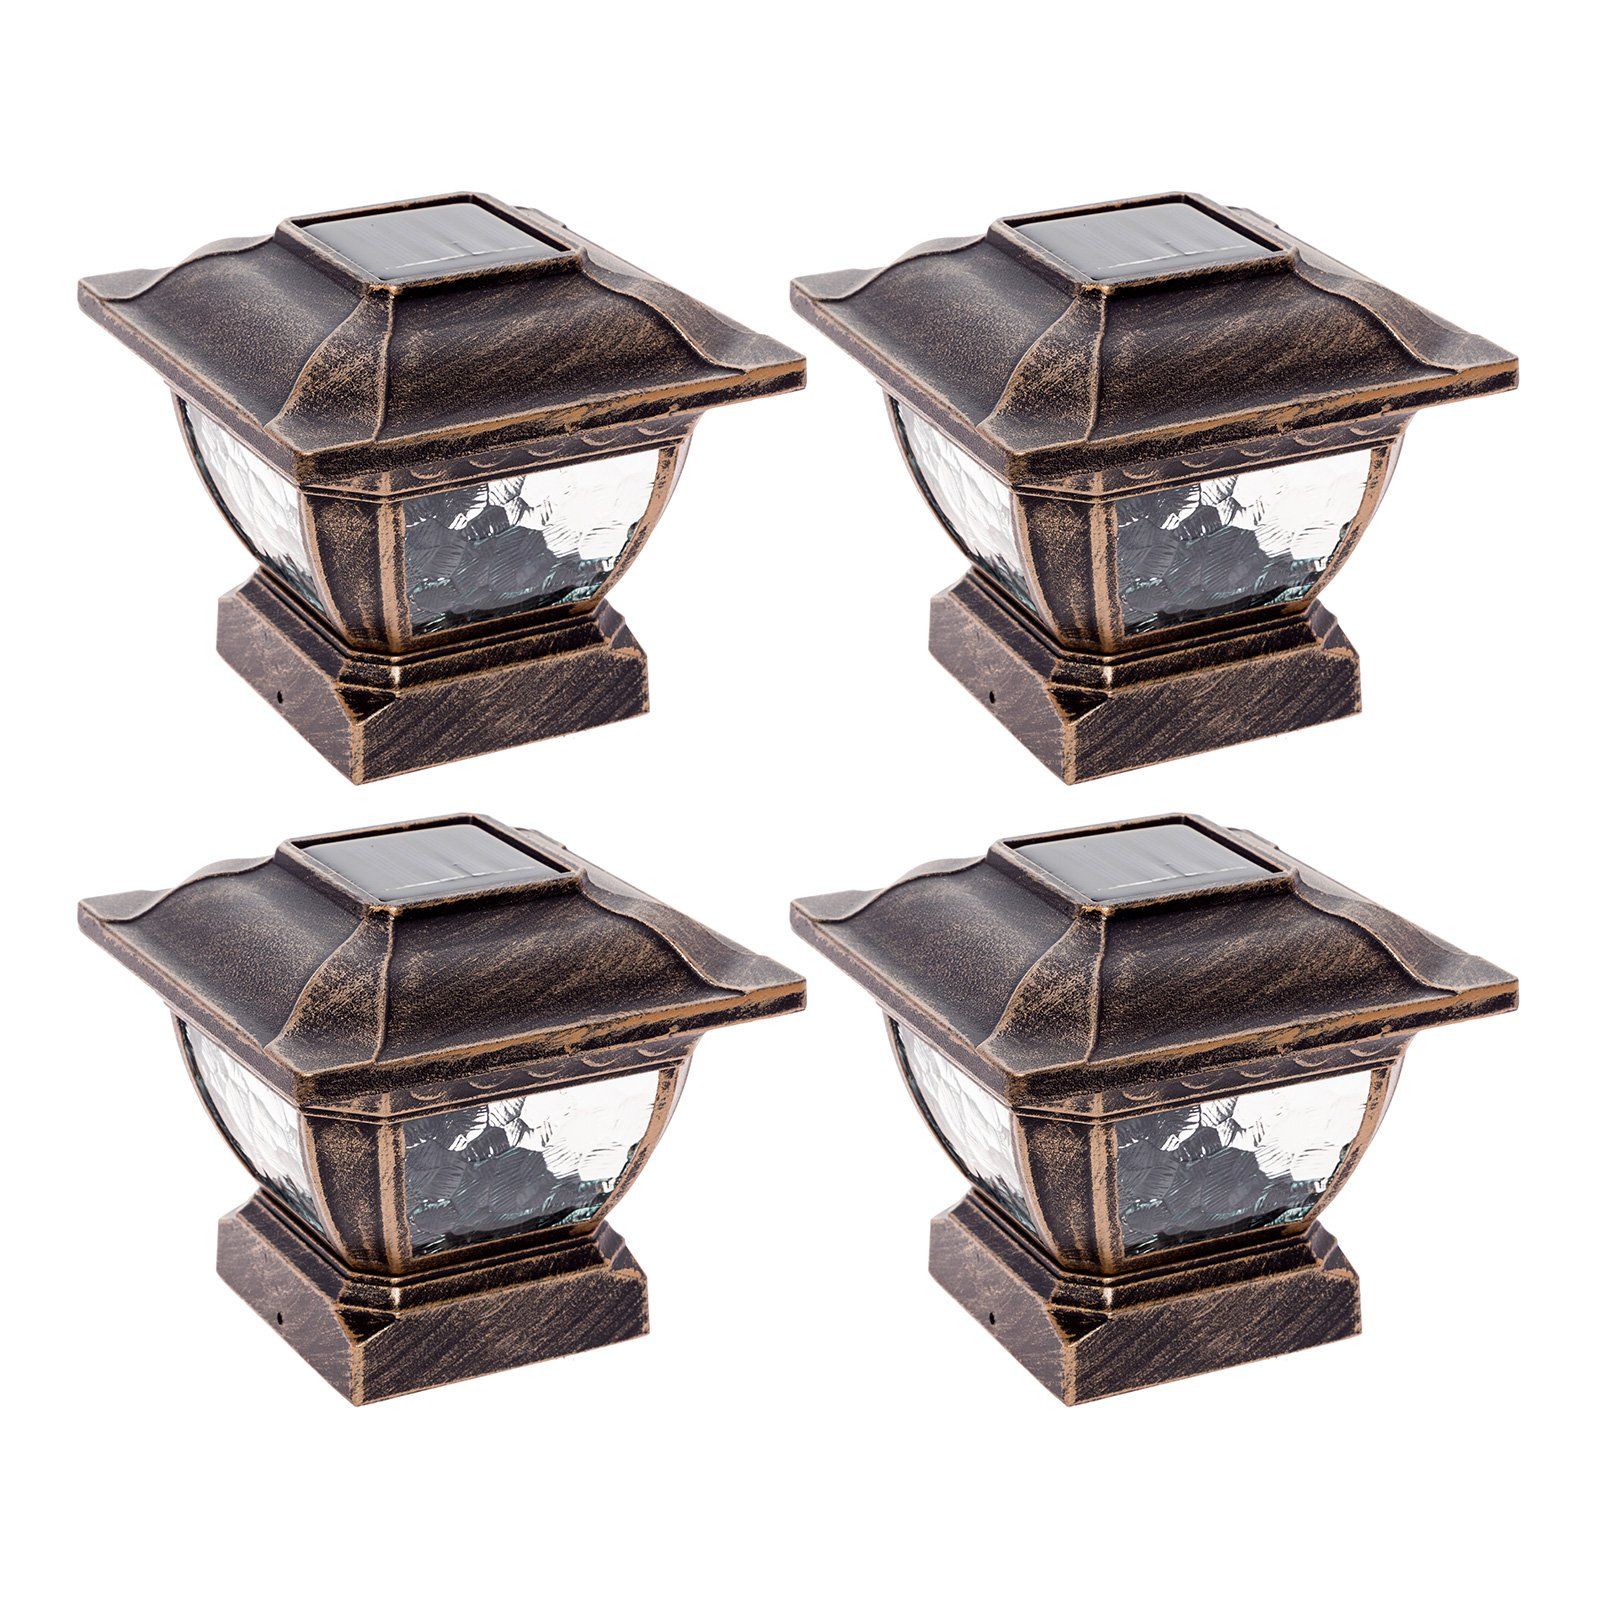 Paradise GL28998BZ Solar Cast Aluminum LED Post Cap Light for 4x4 Wood Posts (Bronze, 4 Pack)